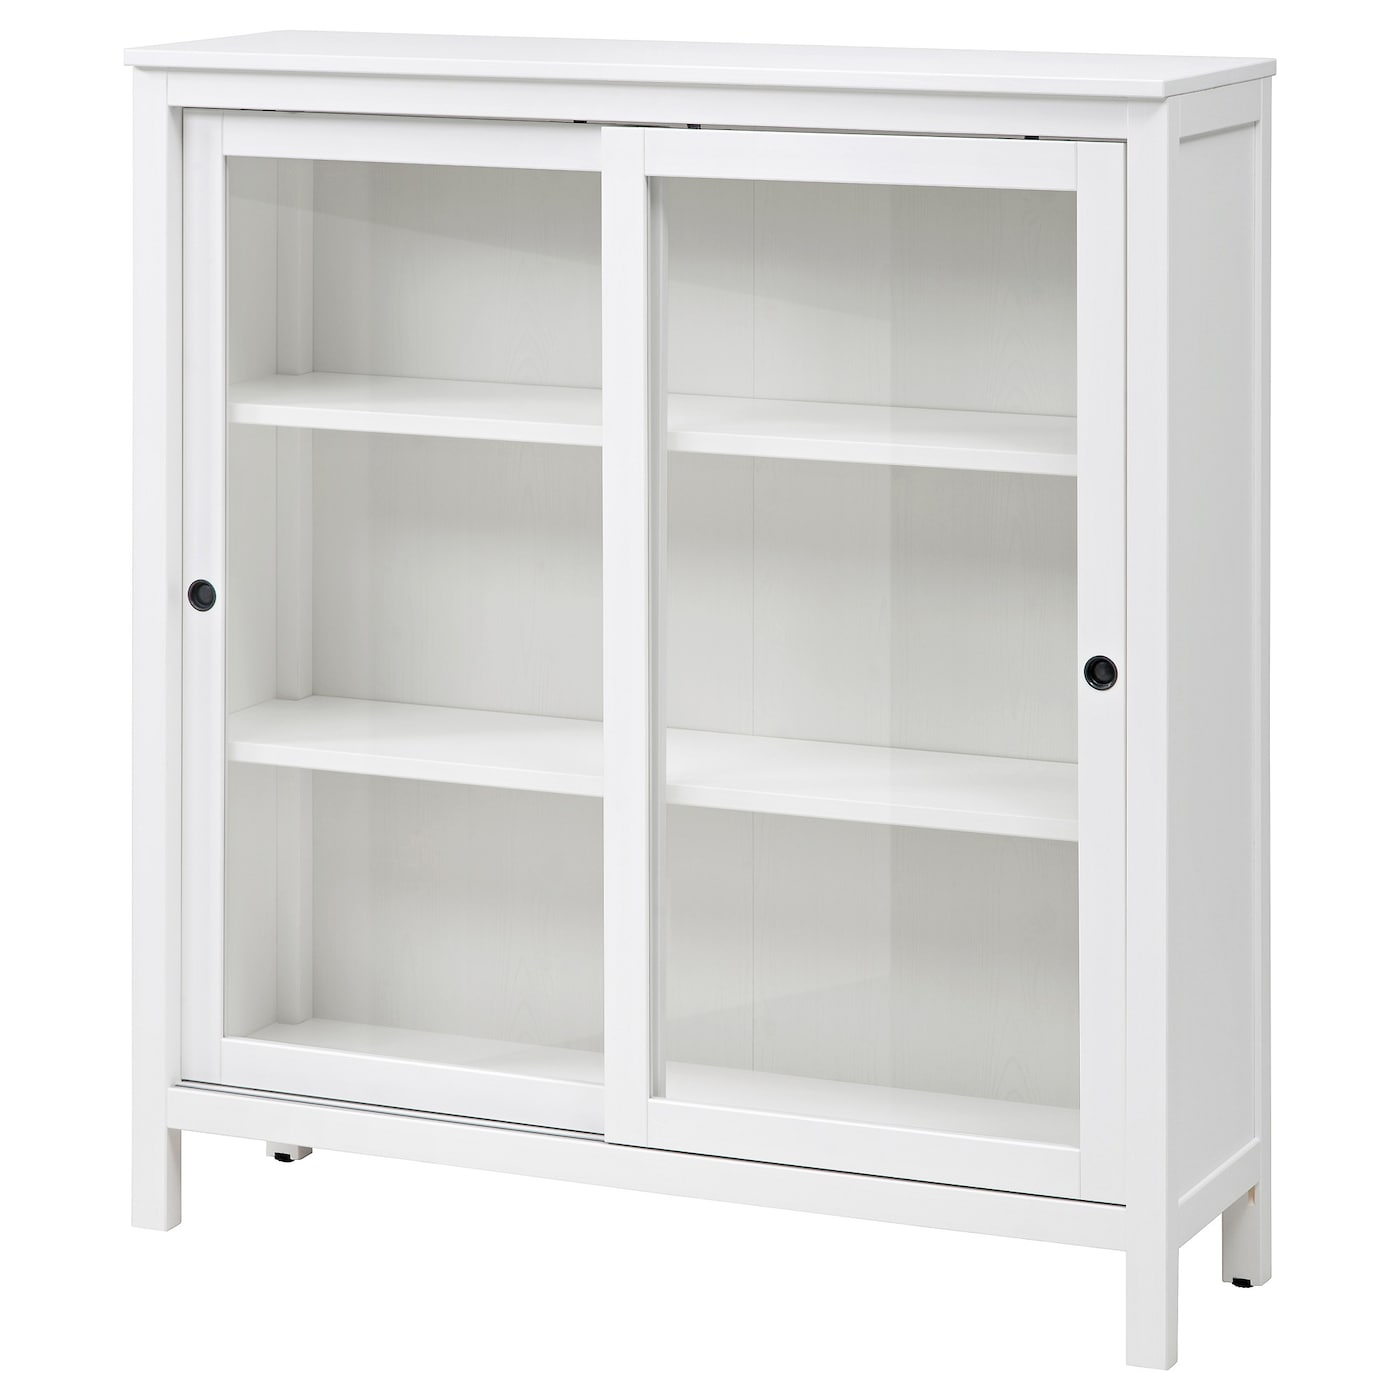 Hemnes glass door cabinet white stain 120x130 cm ikea for Small sliding glass doors